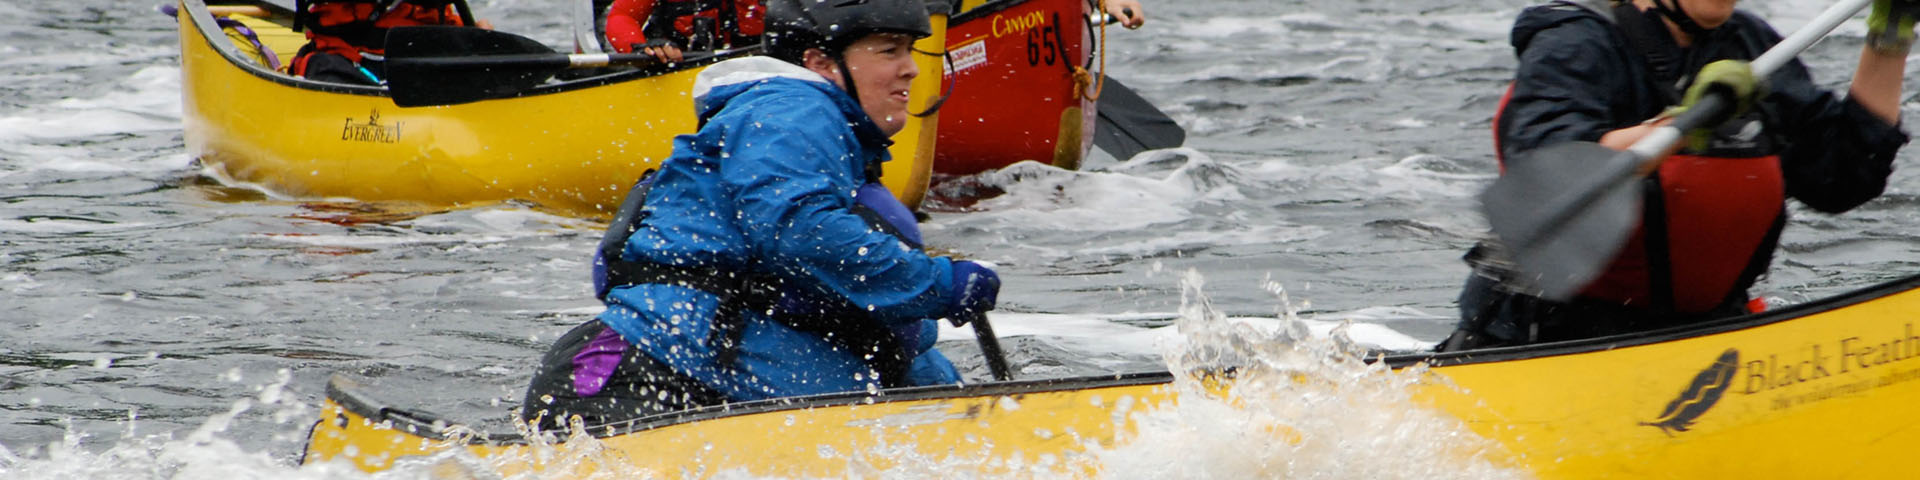 Whitewater Canoeing Clinic by Black Feather - Image 384